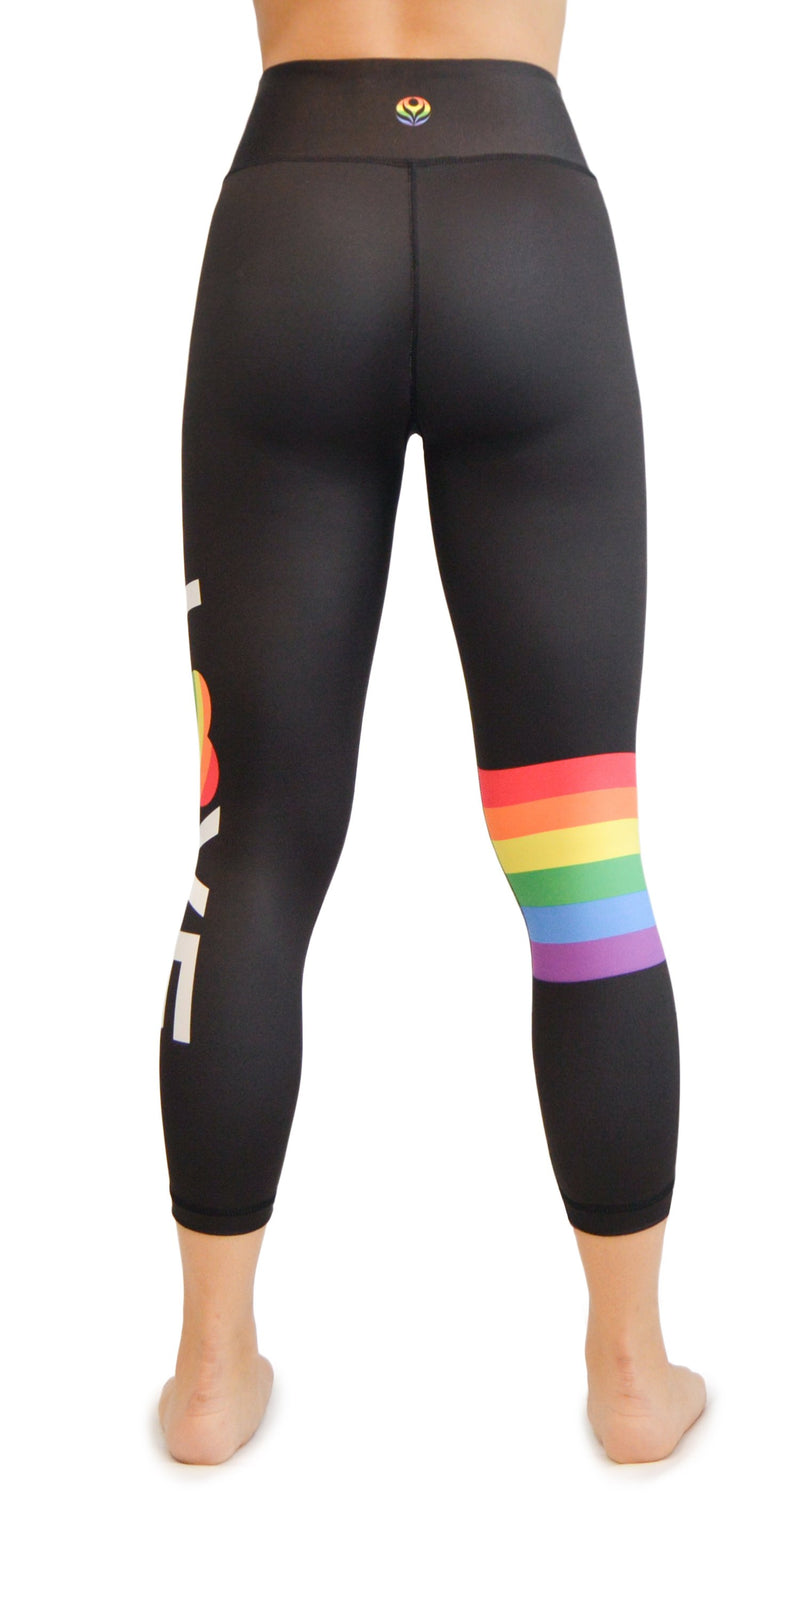 Love Wins - Legging